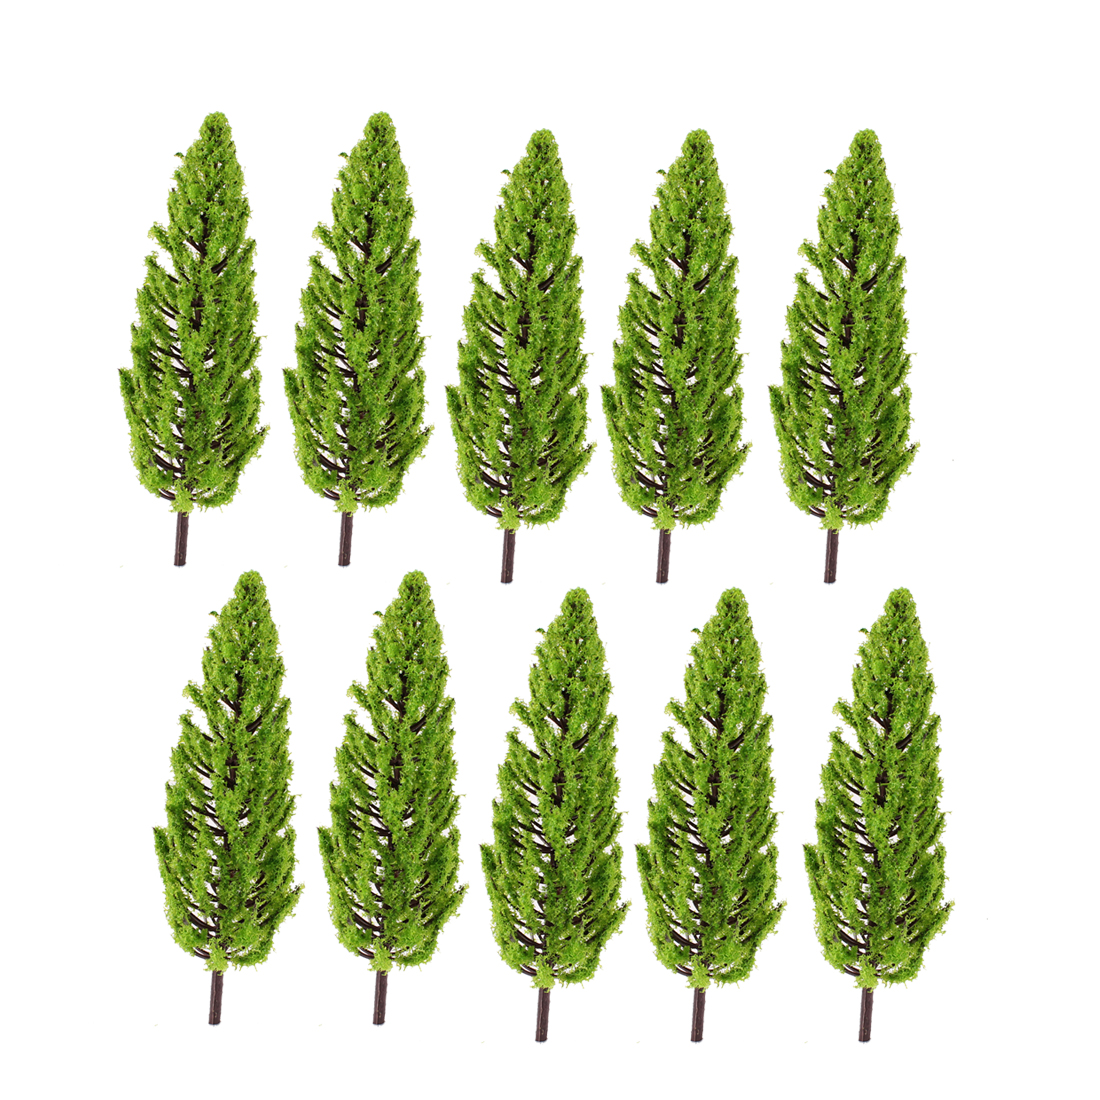 "10 Pcs Light Green Tower Model Trees Layout Scene 1:50 6.3"" High"